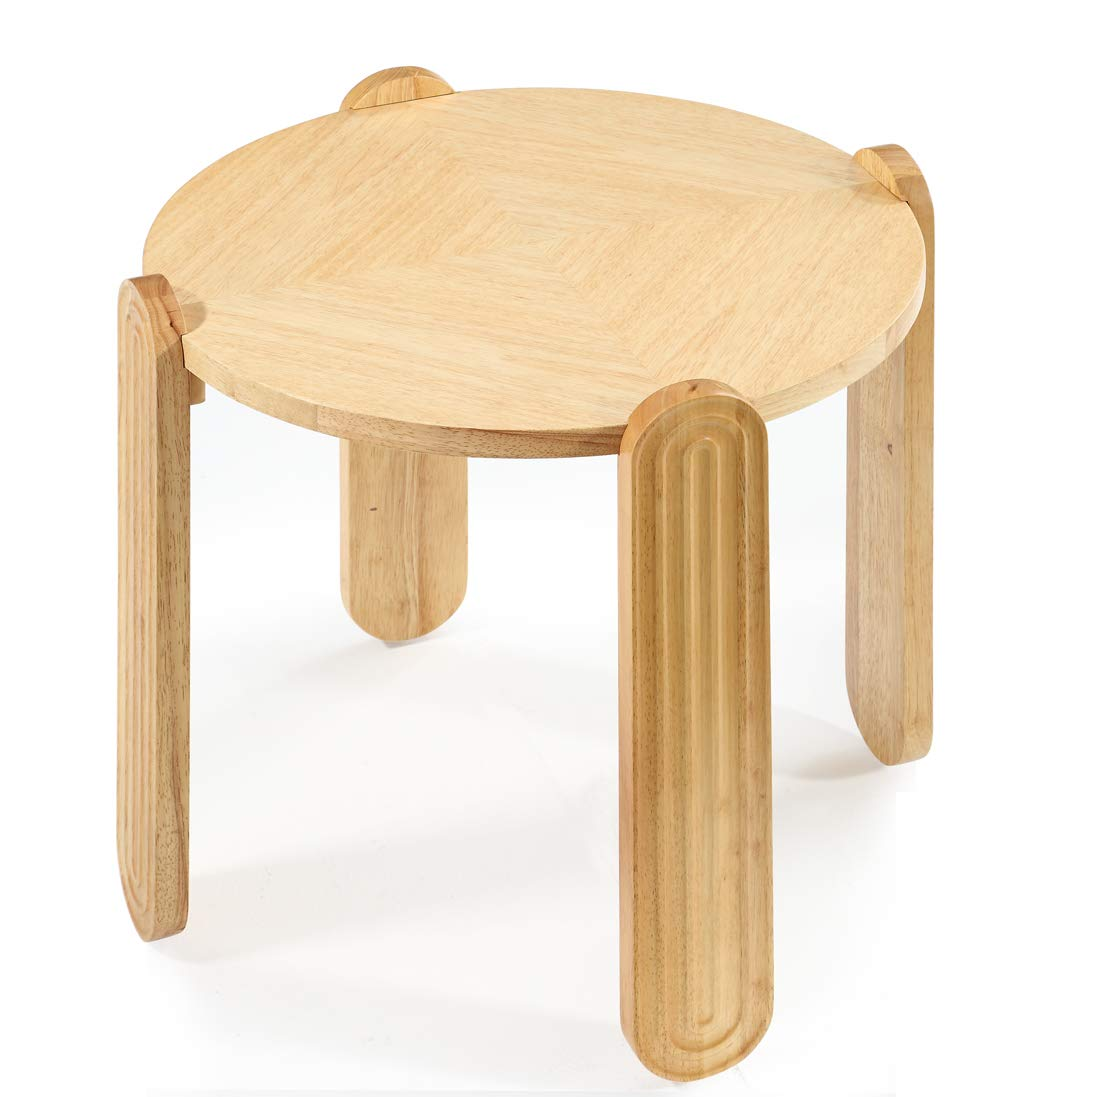 Now House by Jonathan Adler Josef Side Table - $172.99